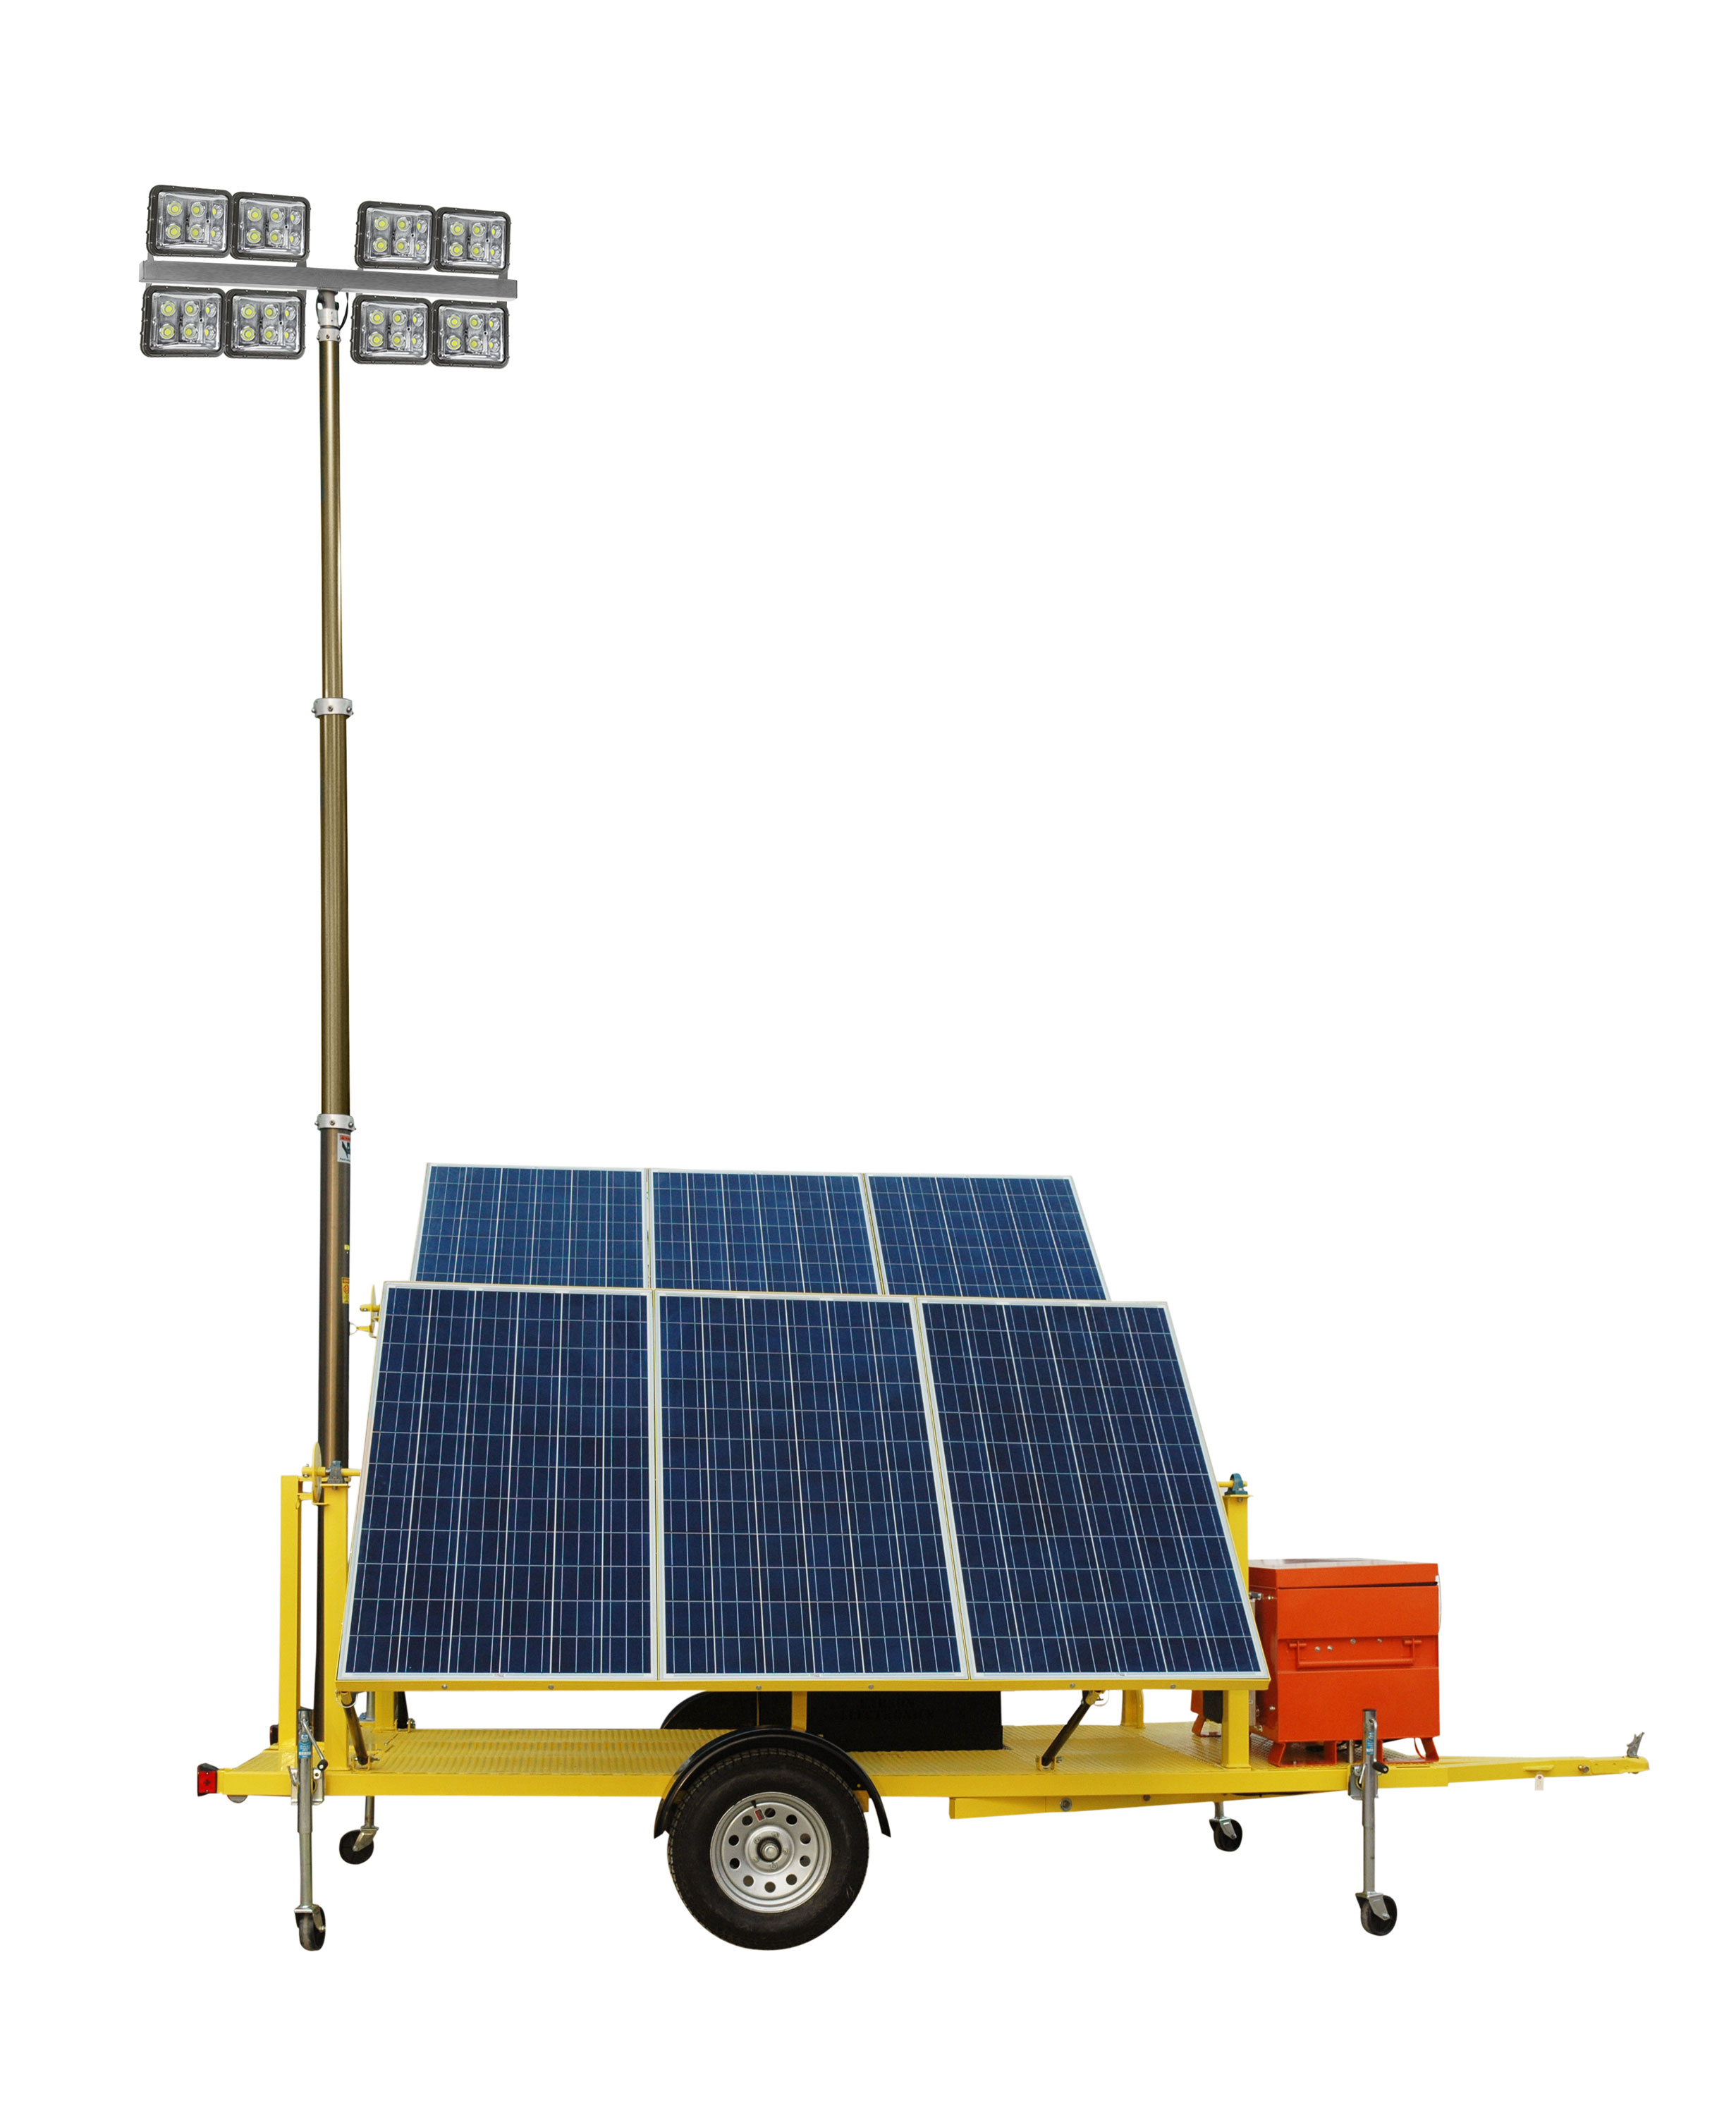 Solar Powered Light Tower Equipped With Four 120 Watt LED